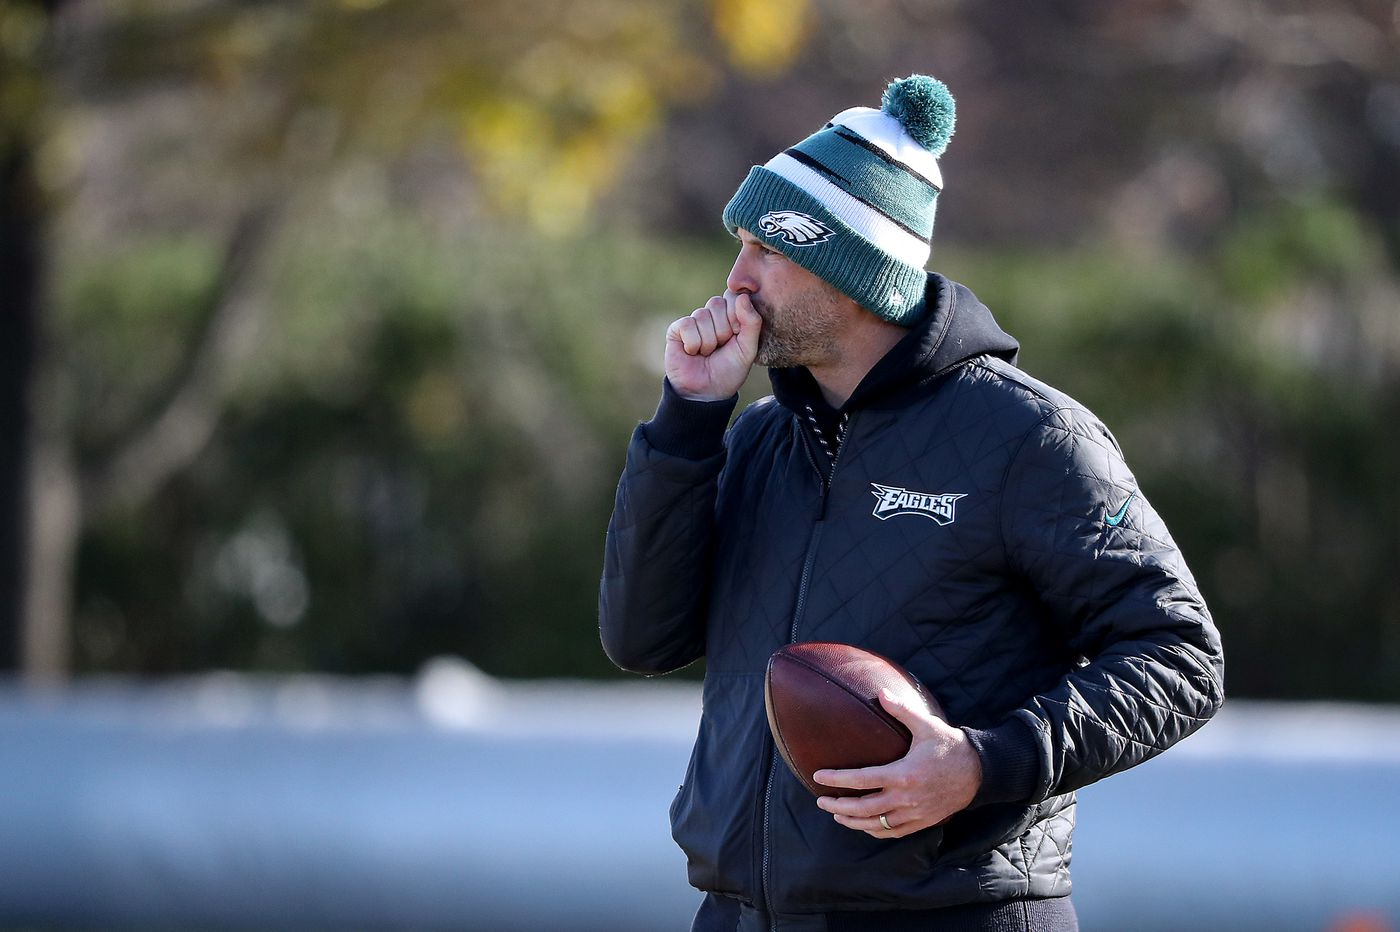 Former Eagles offensive coordinator Mike Groh hired by Indianapolis Colts as WR coach